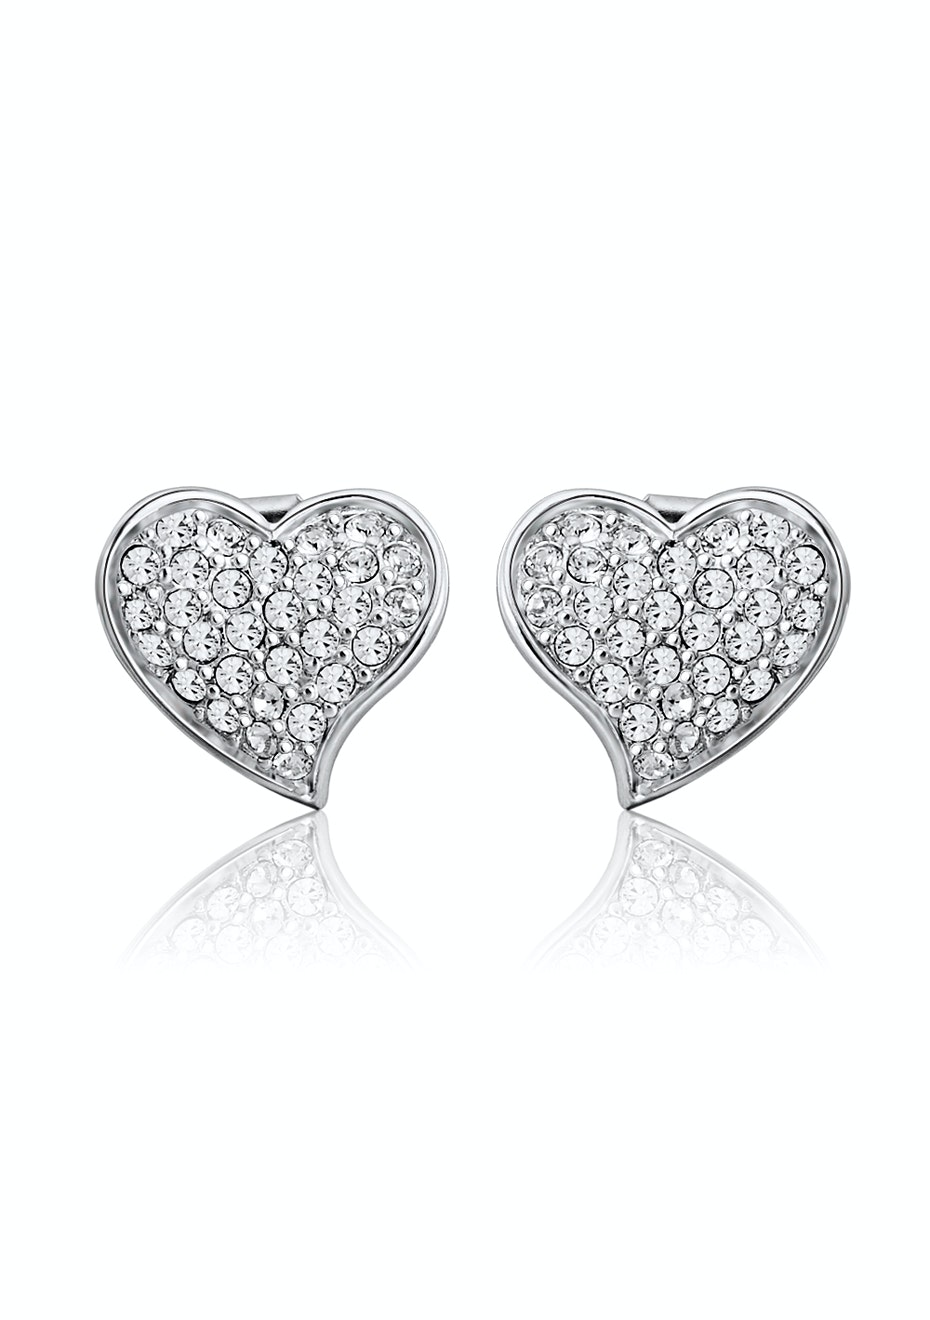 Side Heart Earrings Embellished with Crystals from Swarovski